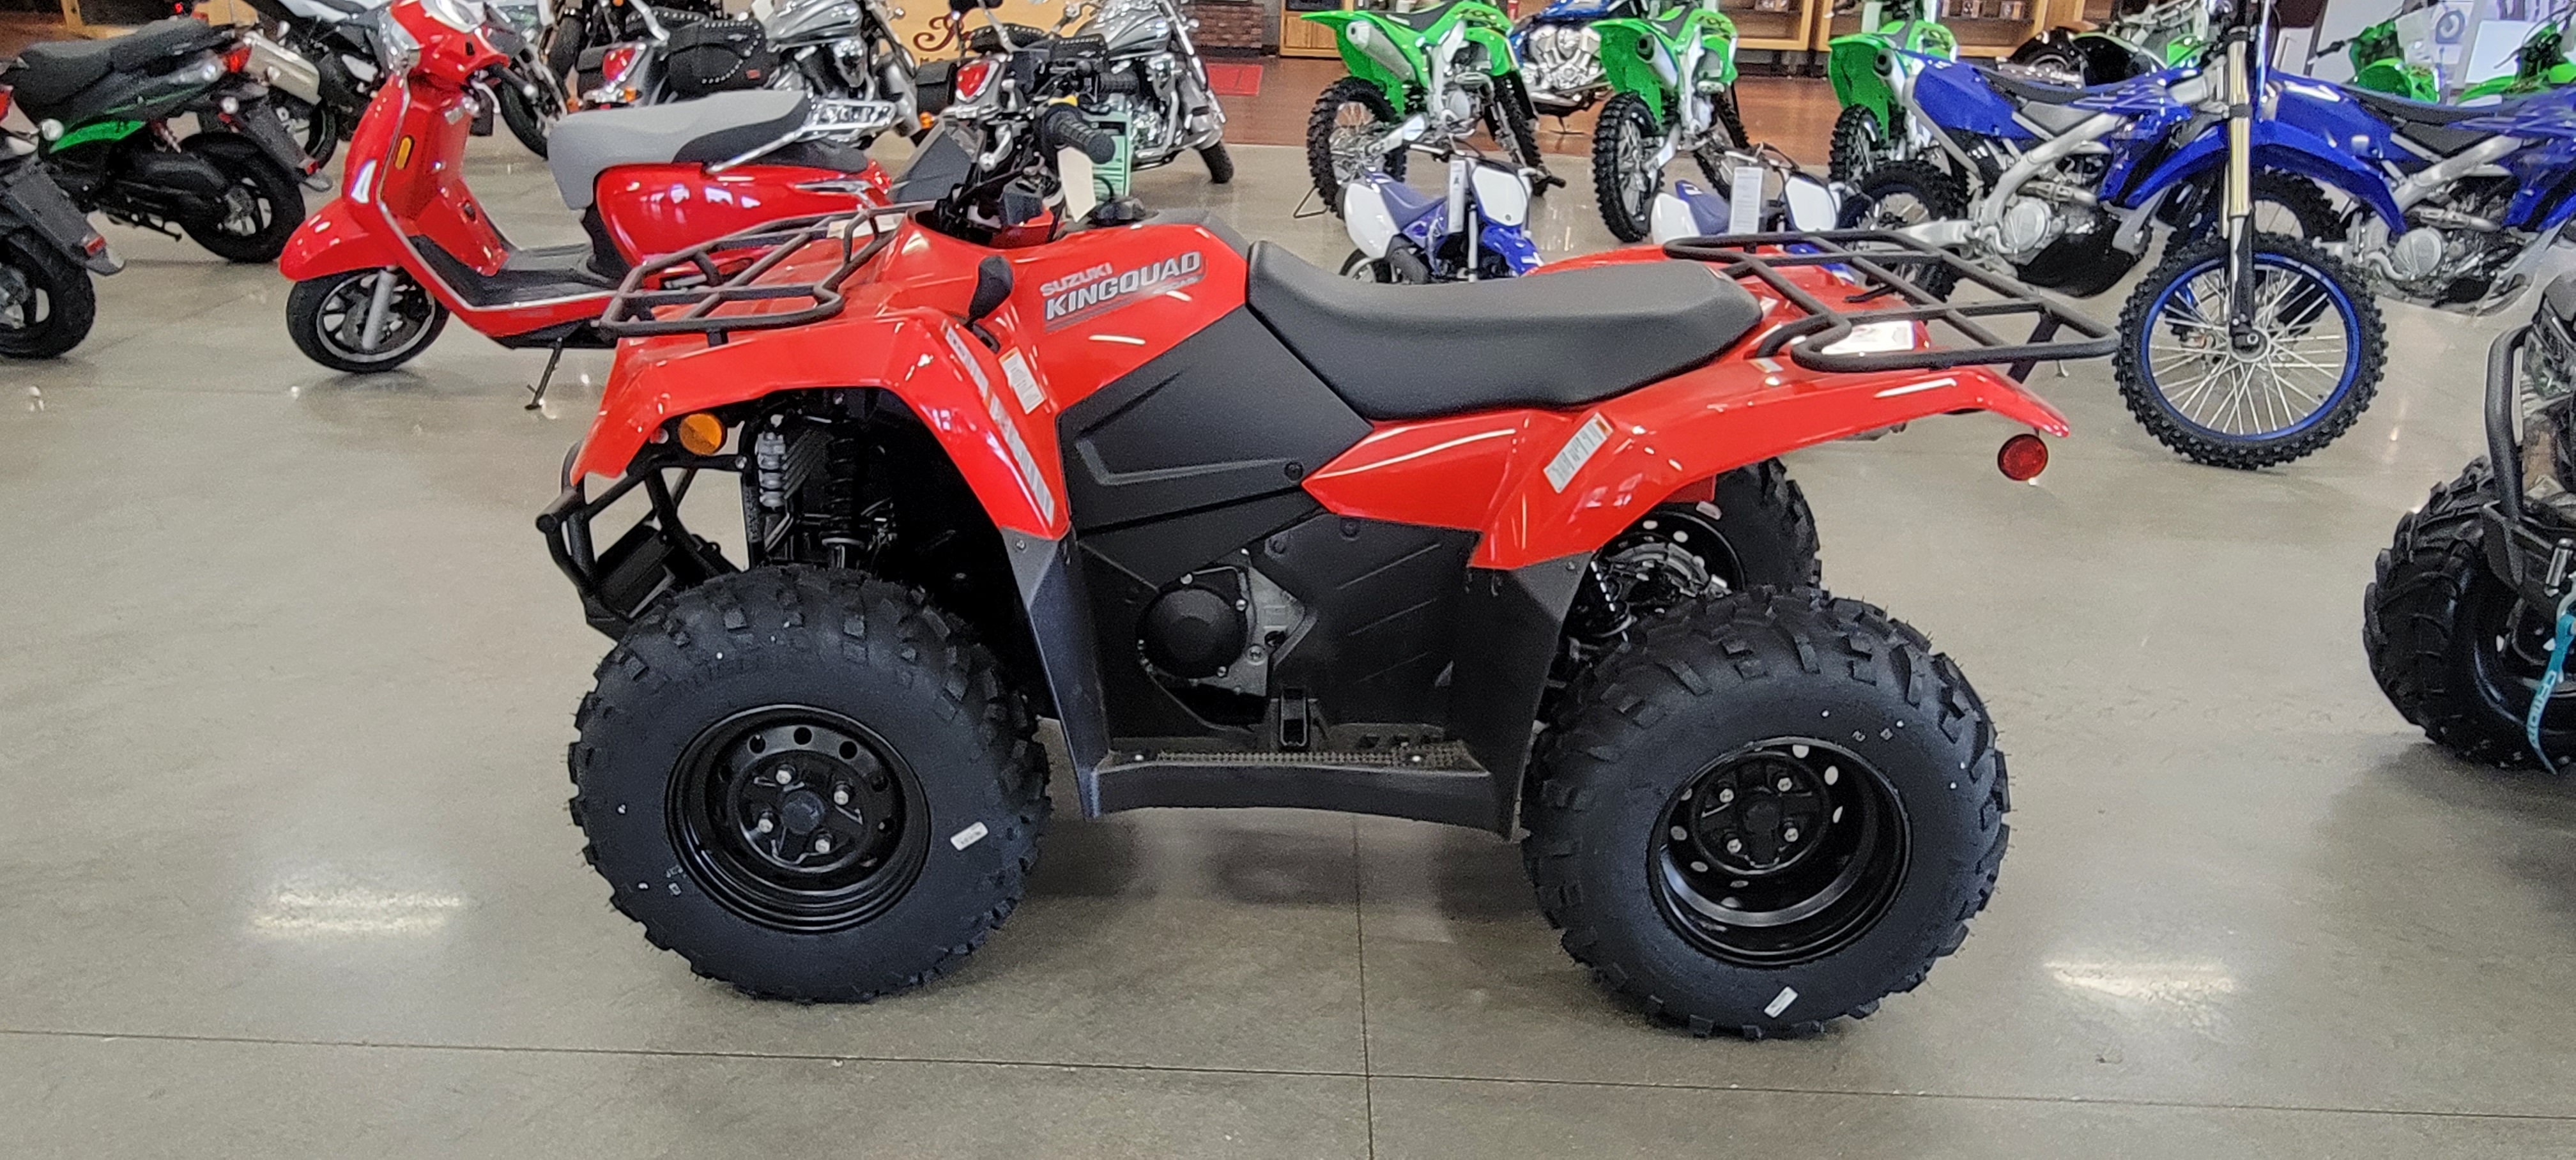 2022 Suzuki KingQuad 400 ASi at Brenny's Motorcycle Clinic, Bettendorf, IA 52722